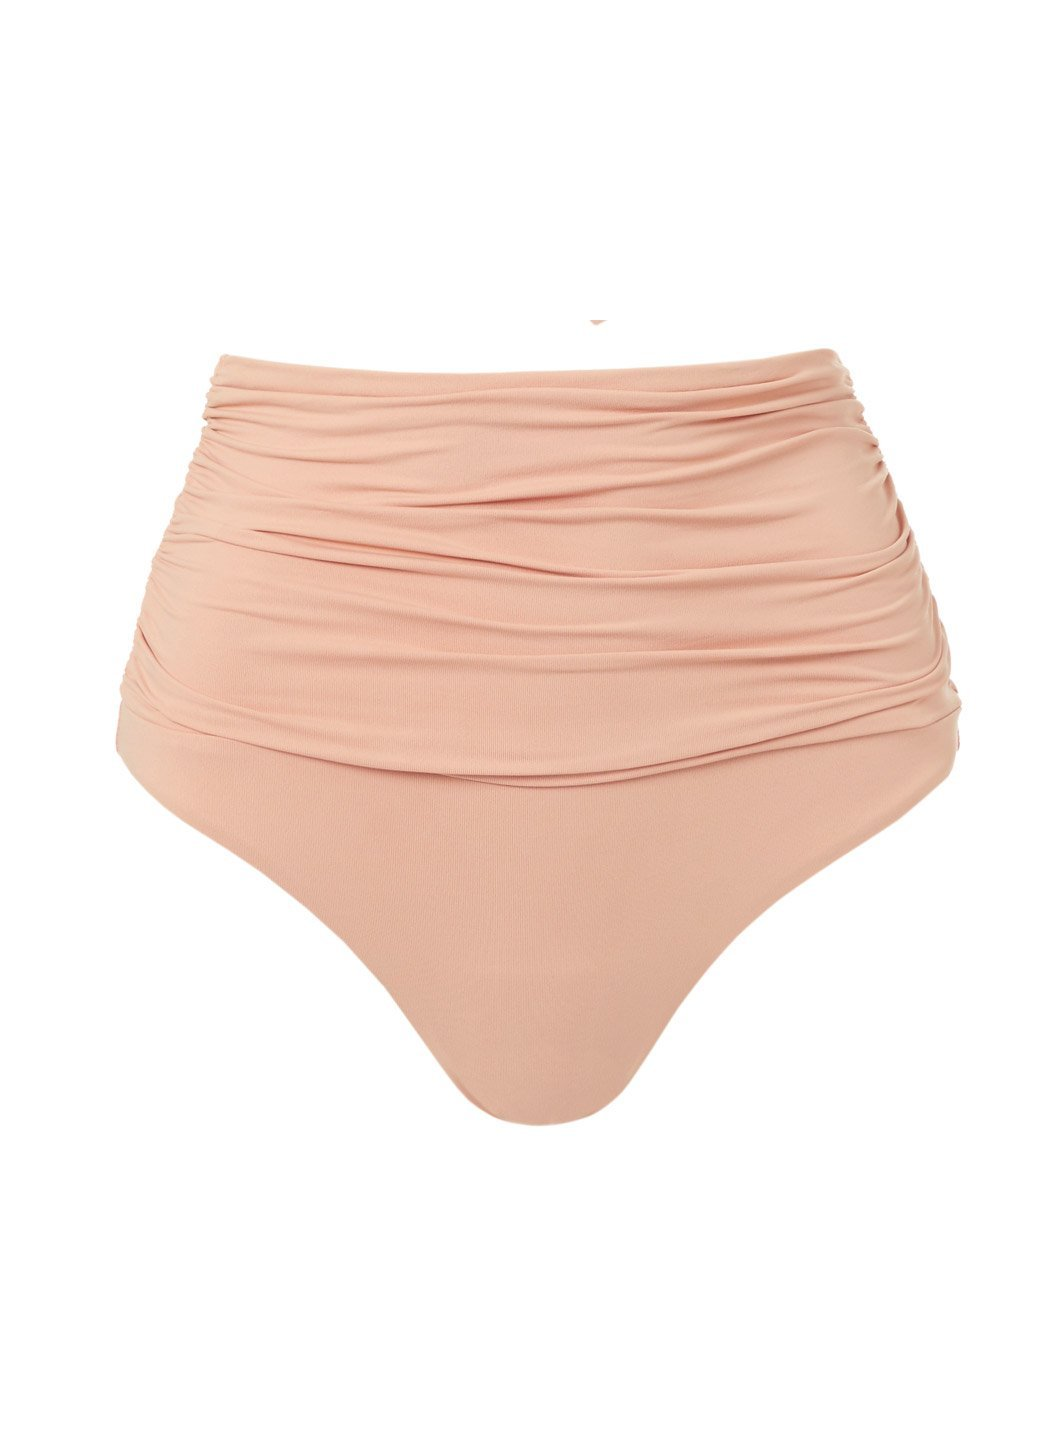 Lyon Tan High Waisted Ruched Bikini Bottom